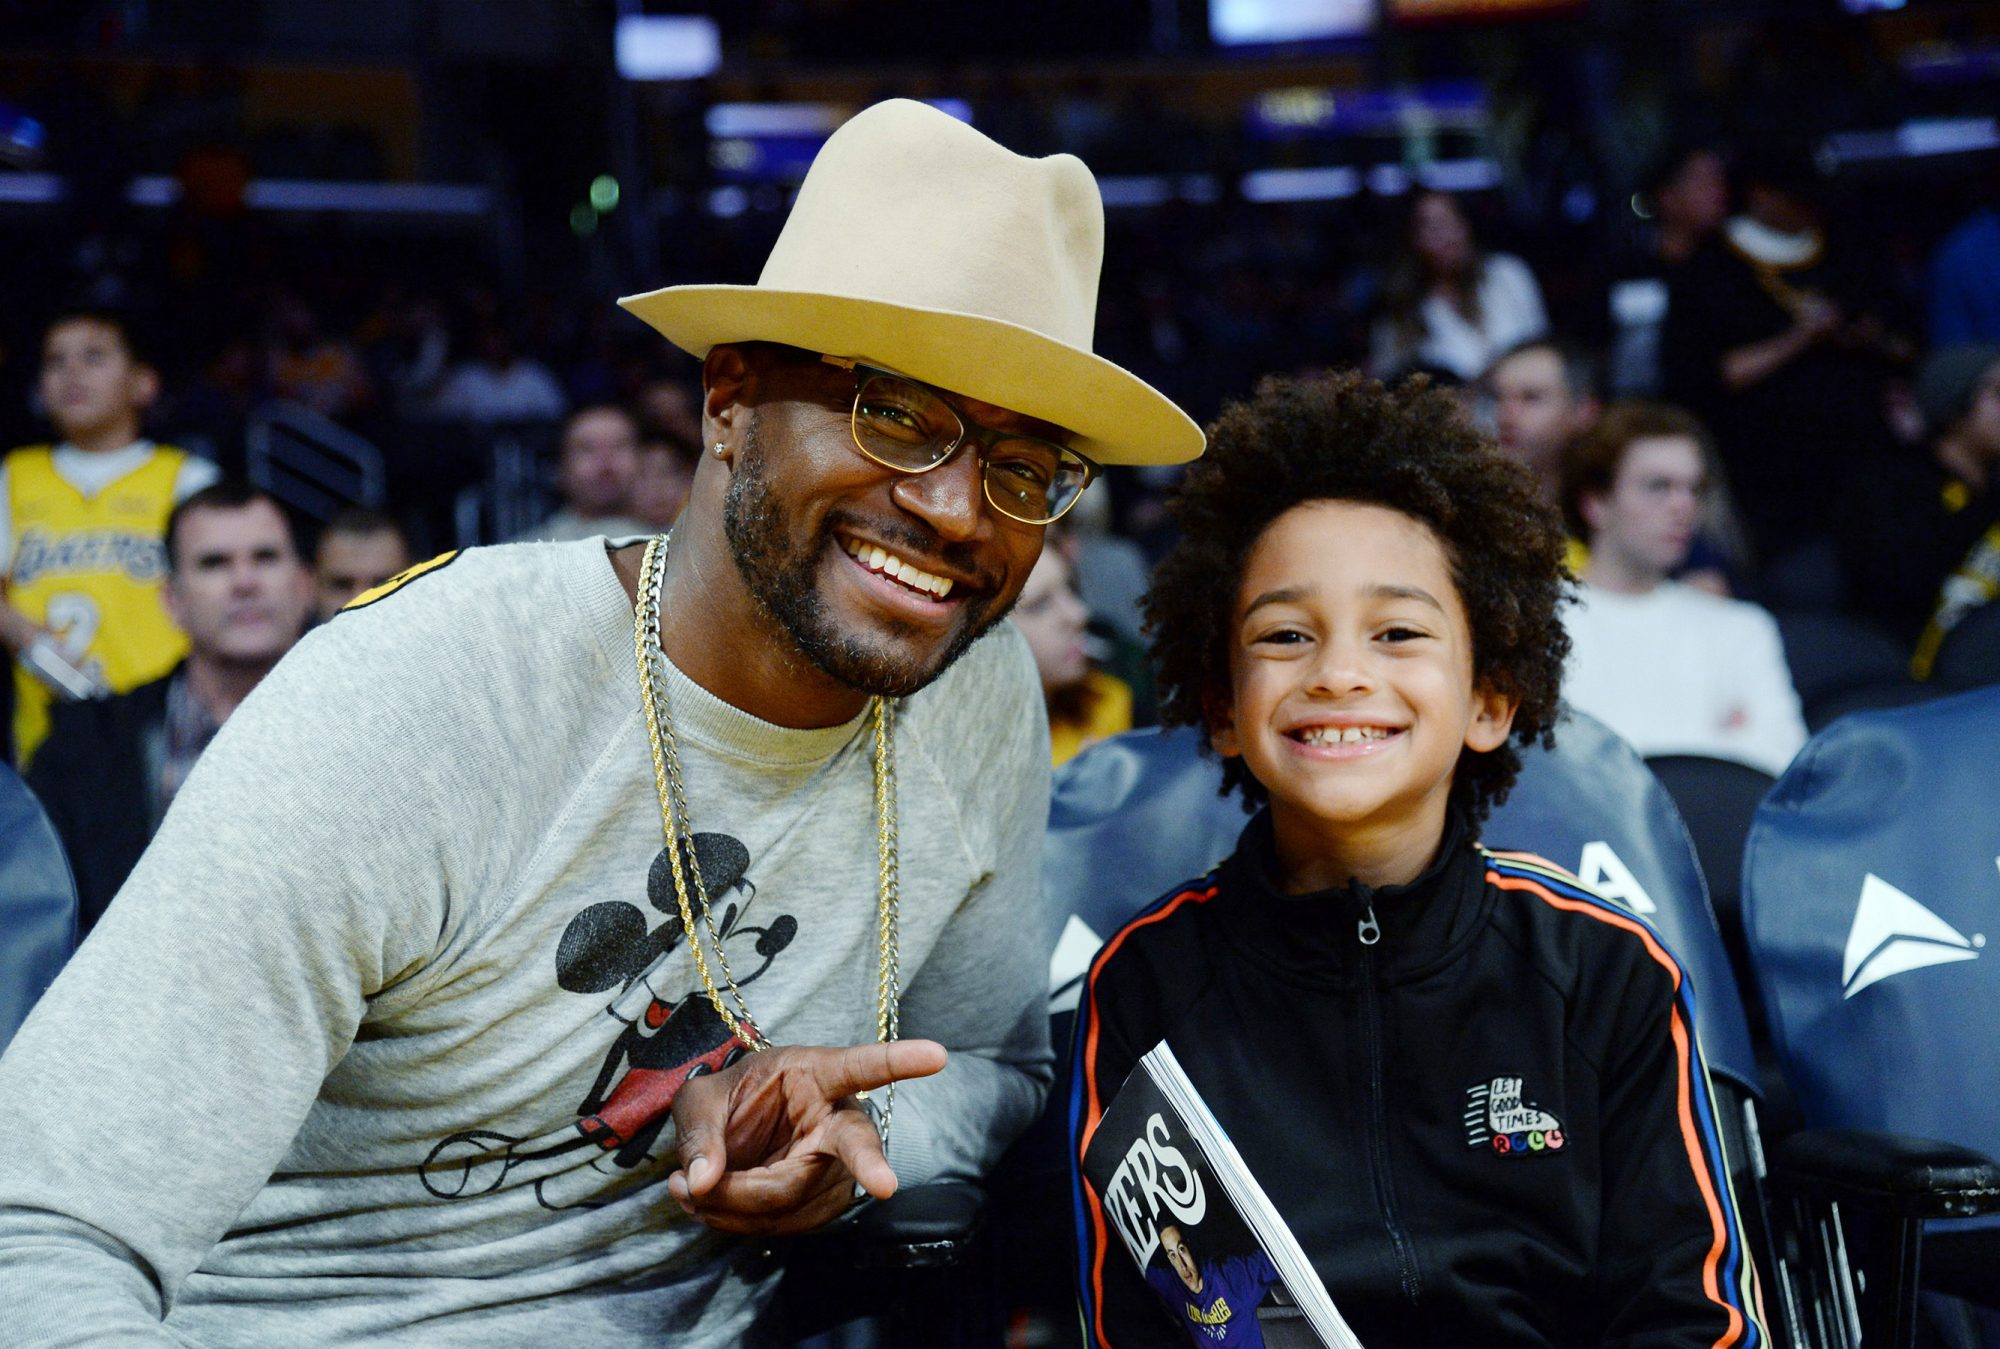 Taye Diggs and his son Walker Diggs